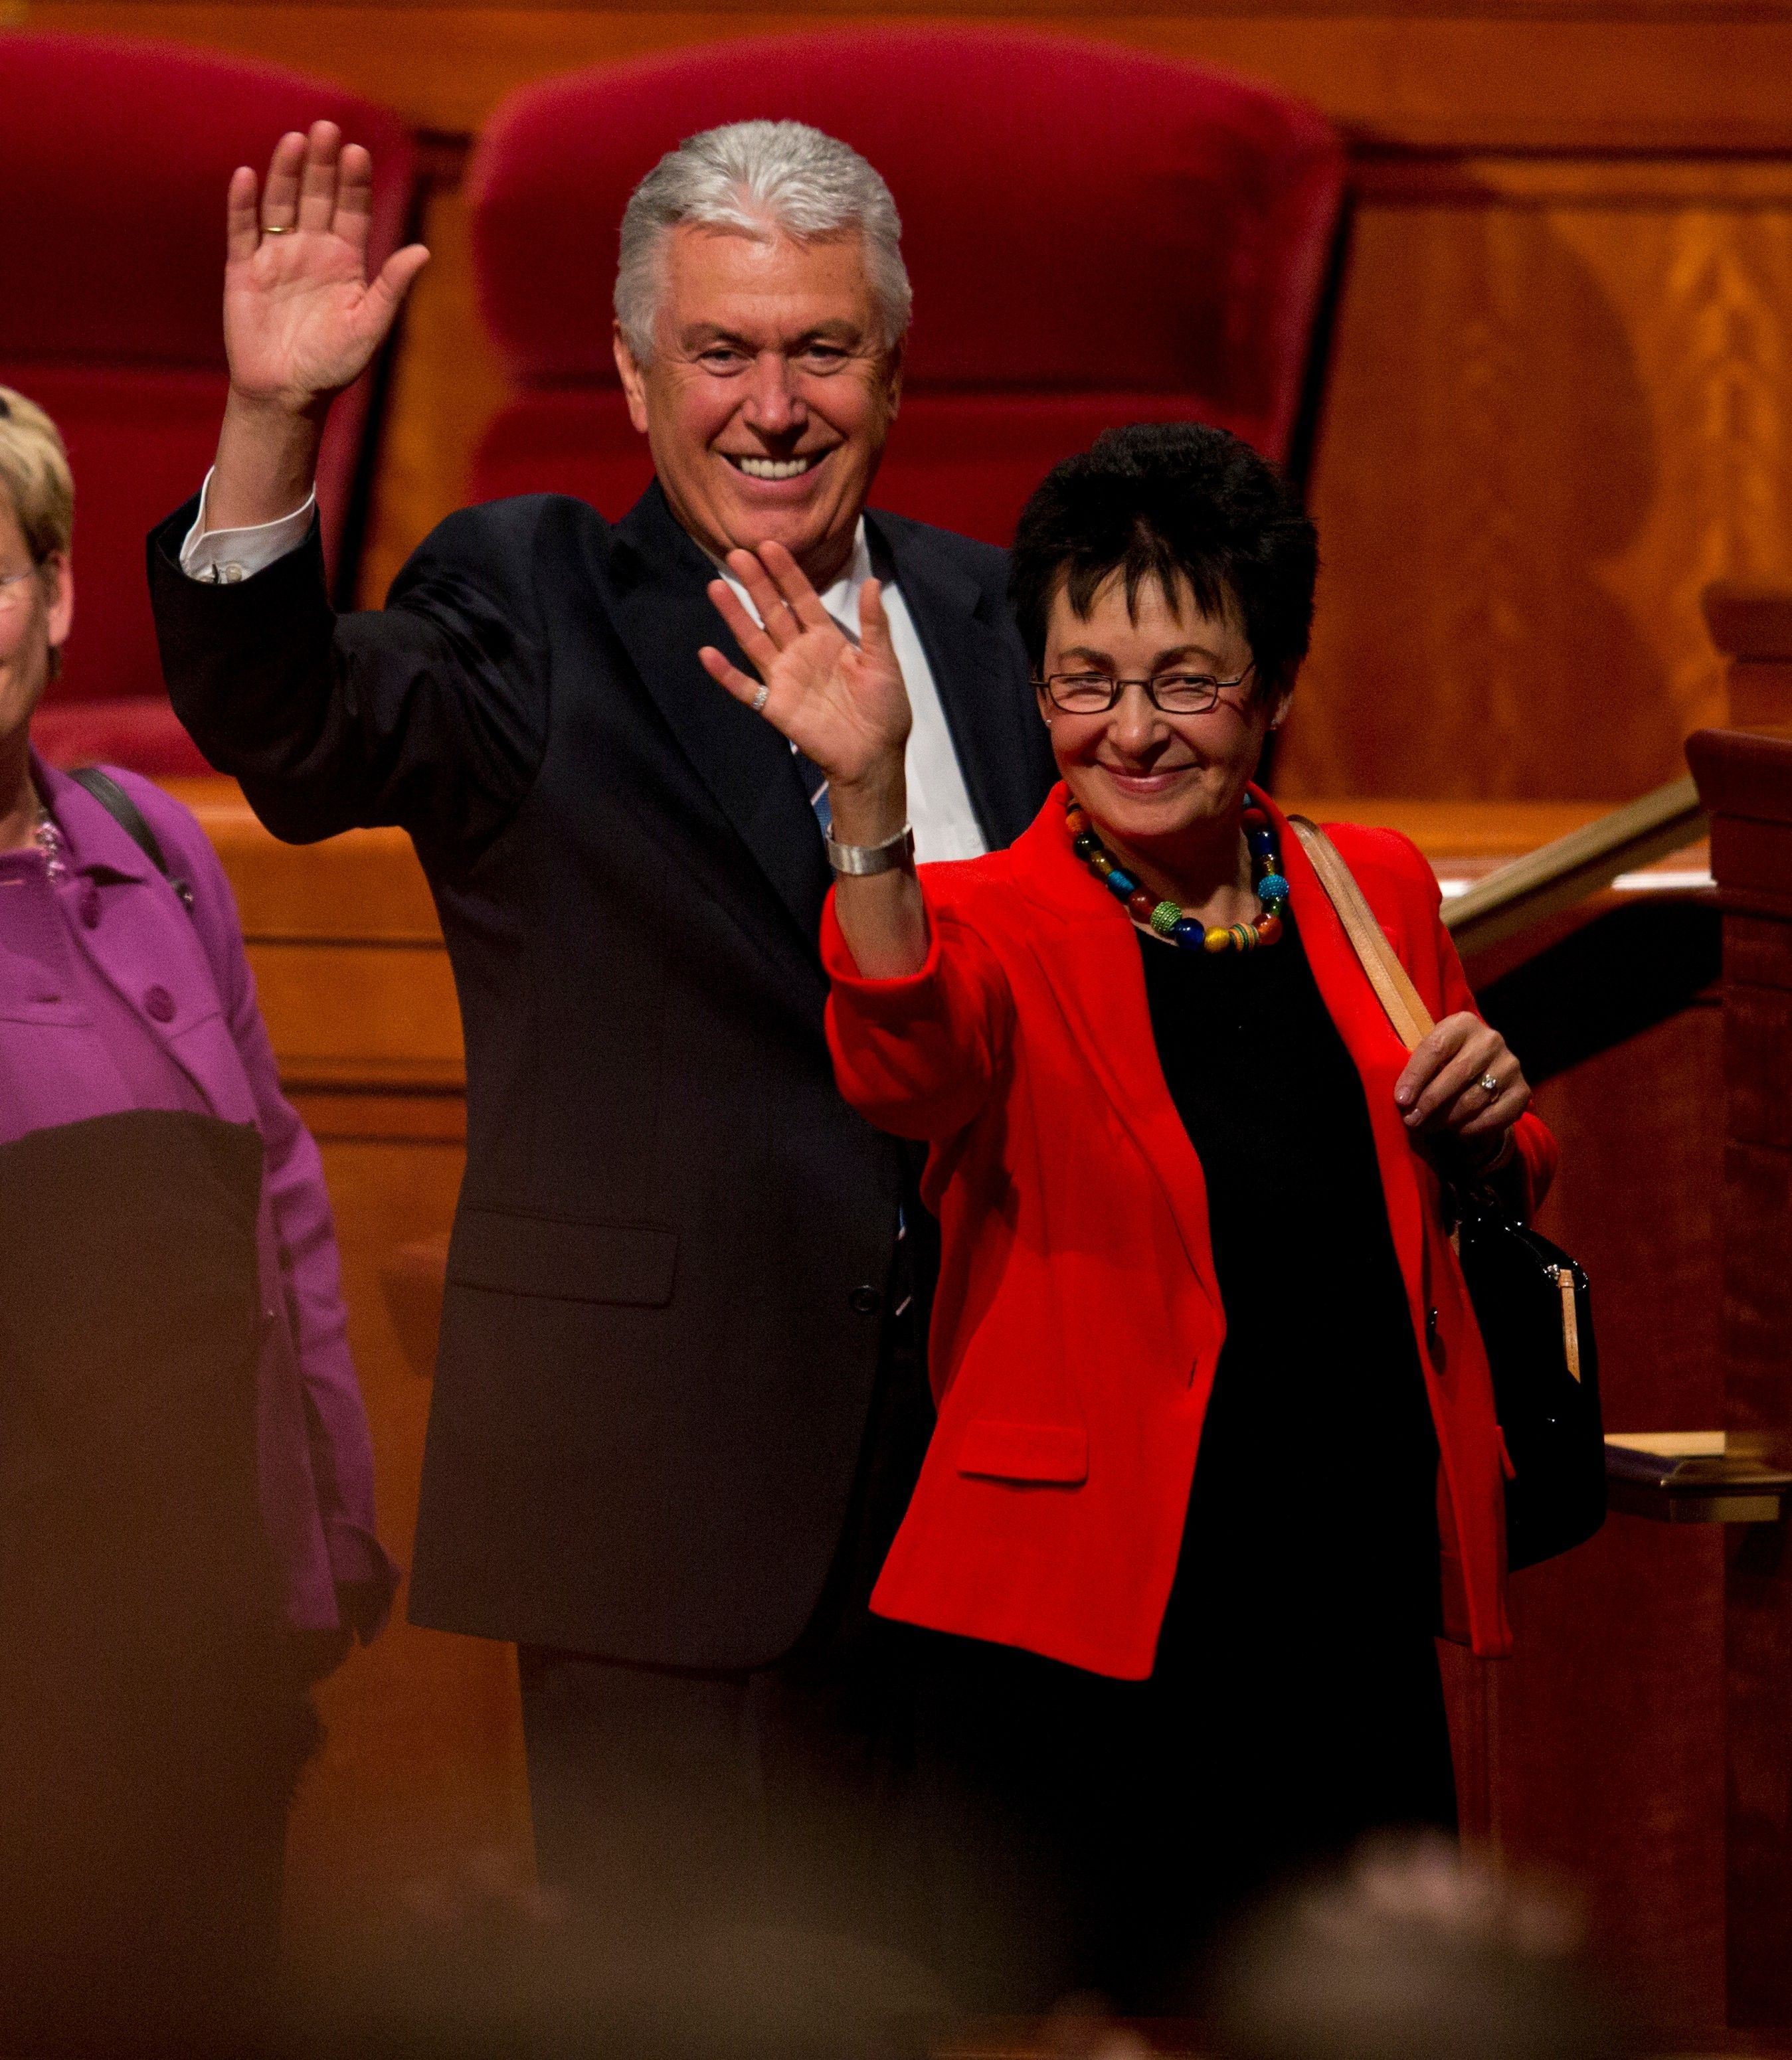 Dieter and Harriet Uchtdorf waving to the congregation in the Conference Center.